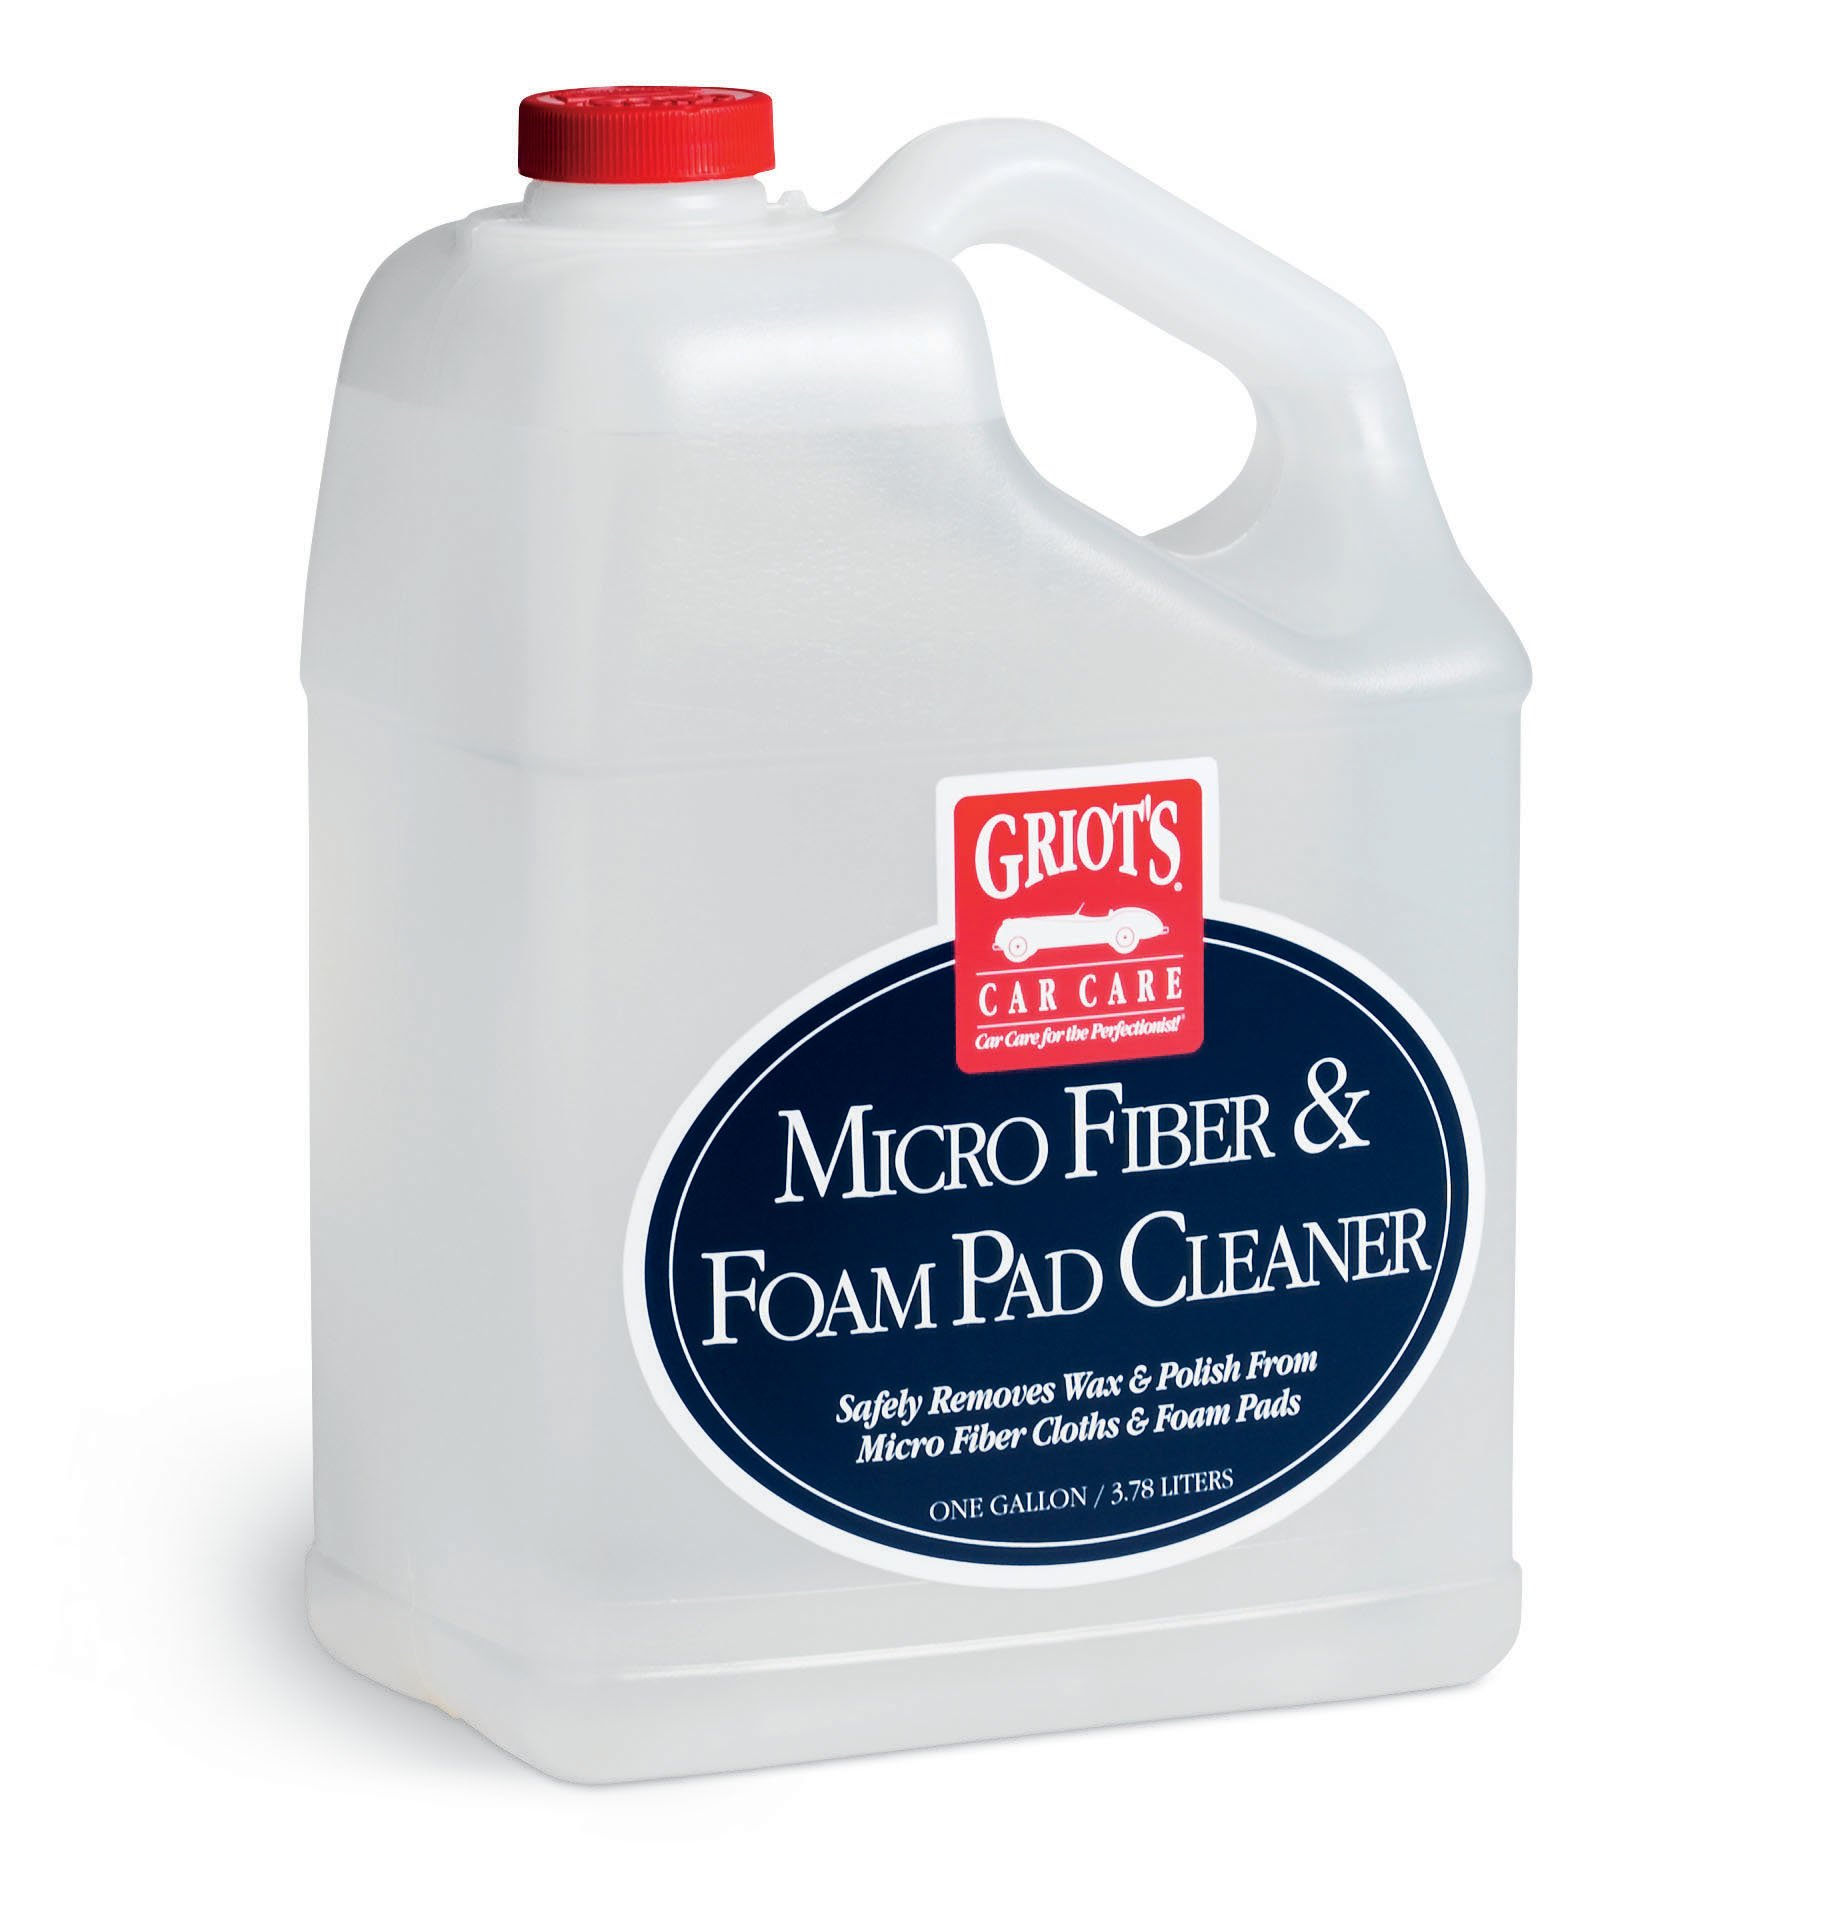 Griot's Garage 11067 Gallon Micro Fiber and Foam Pad Cleaner Gallon by Griot's Garage